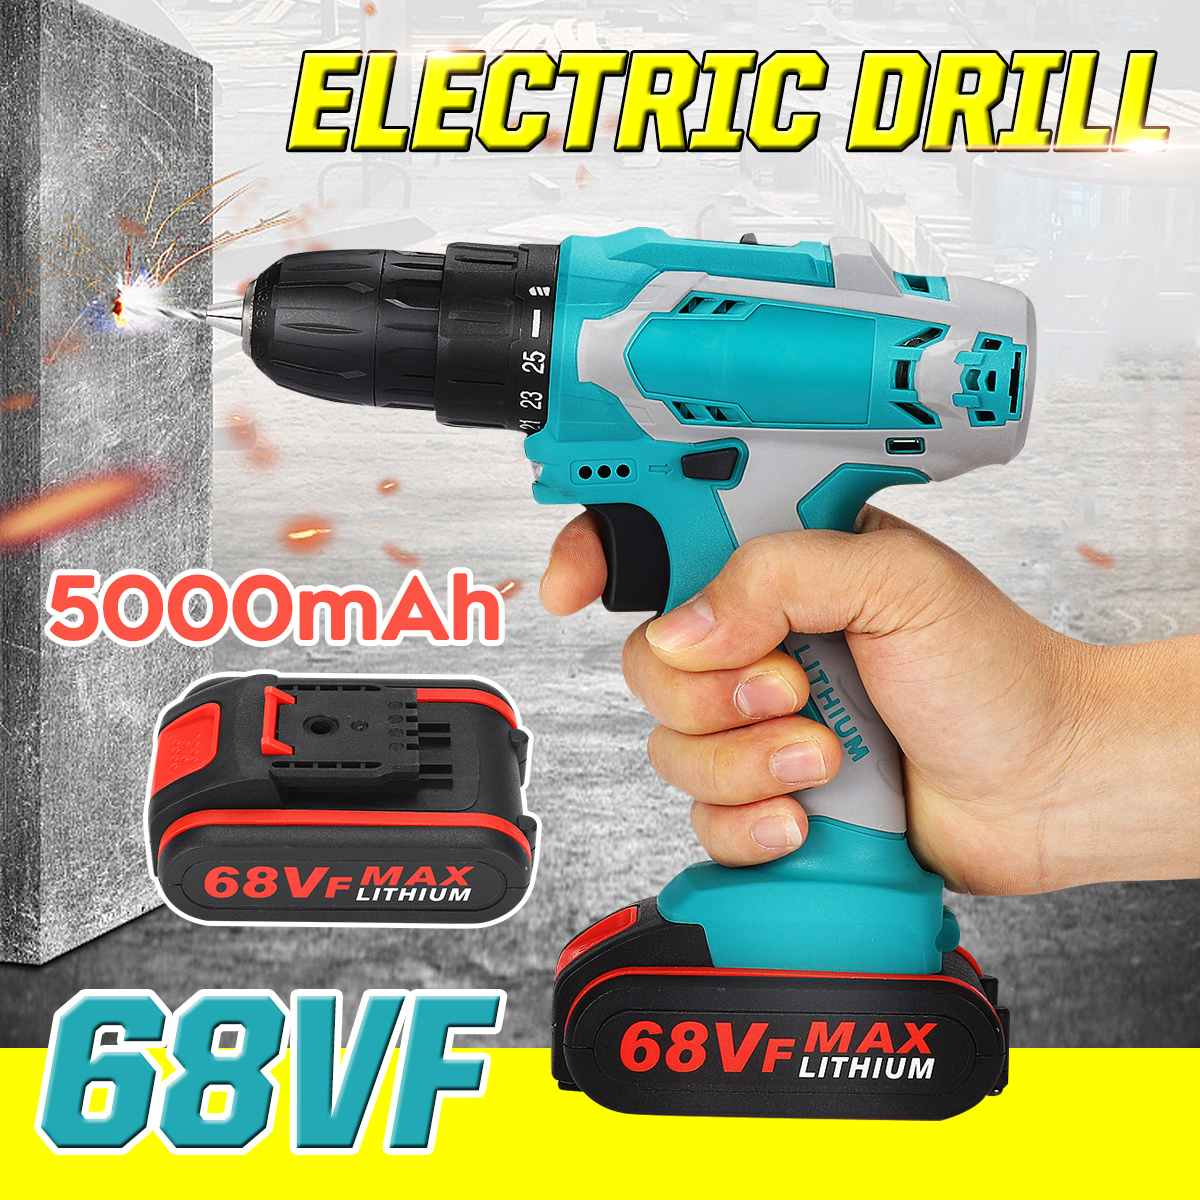 21V 2200r/min Dual Speed Electric Drill 2pcs Screwdriver DC Lithium-Ion Batteries Cordless Drill Power Tool 2-Speed 25+3 N.M